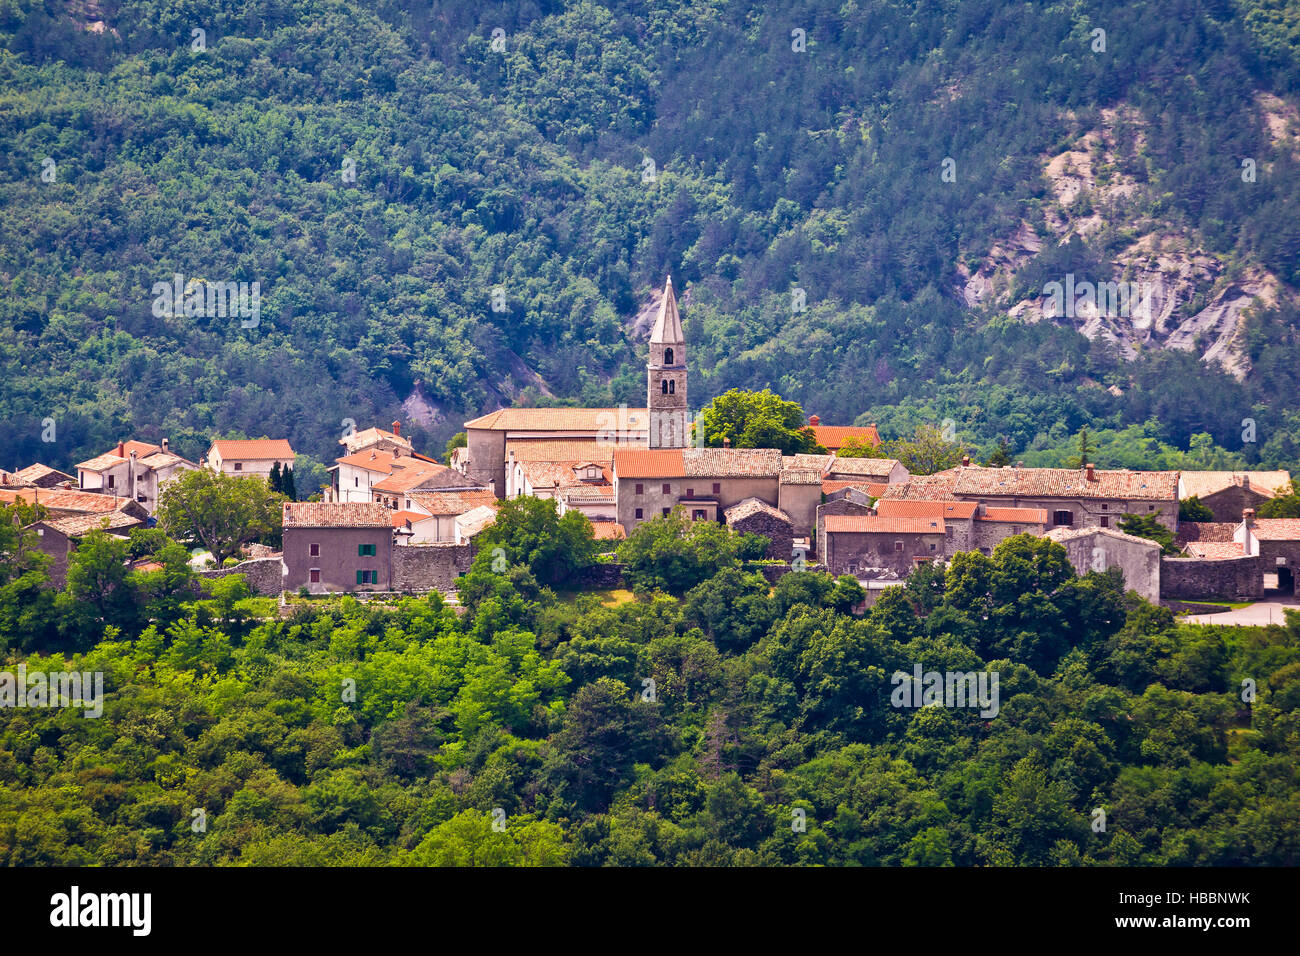 Village of Roc in istrian inland - Stock Image